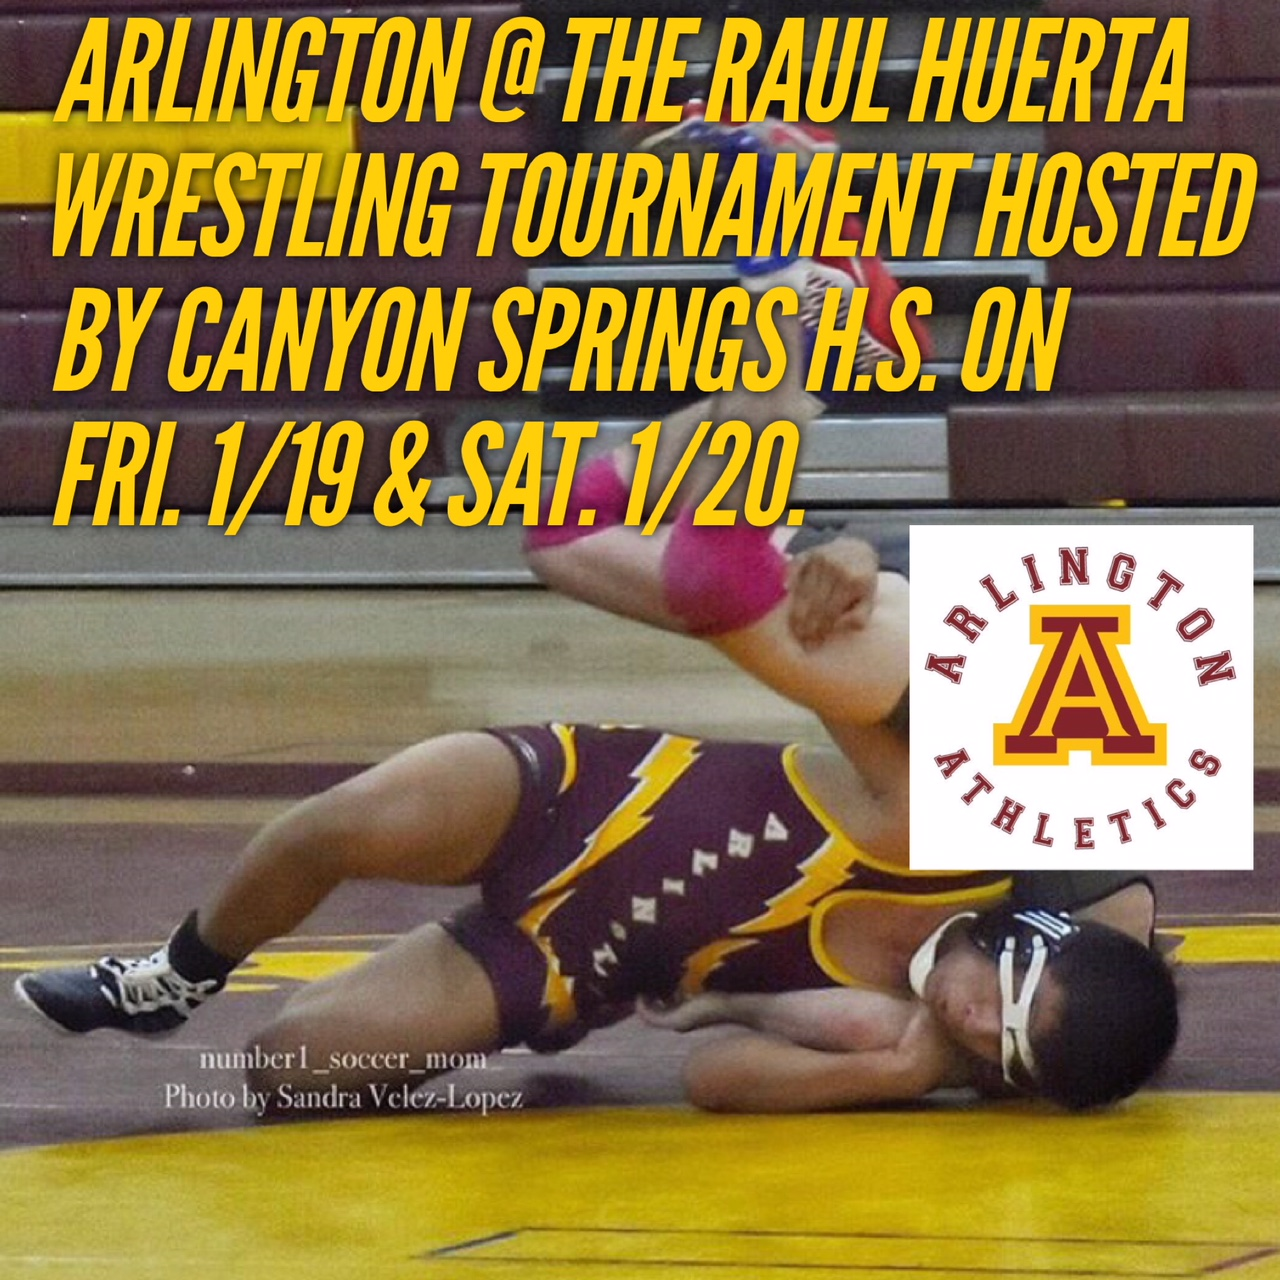 Arlington Wrestling at the Raul Huerta Tournament hosted by Canyon Springs on Friday, 1/19 and Saturday, 1/20.